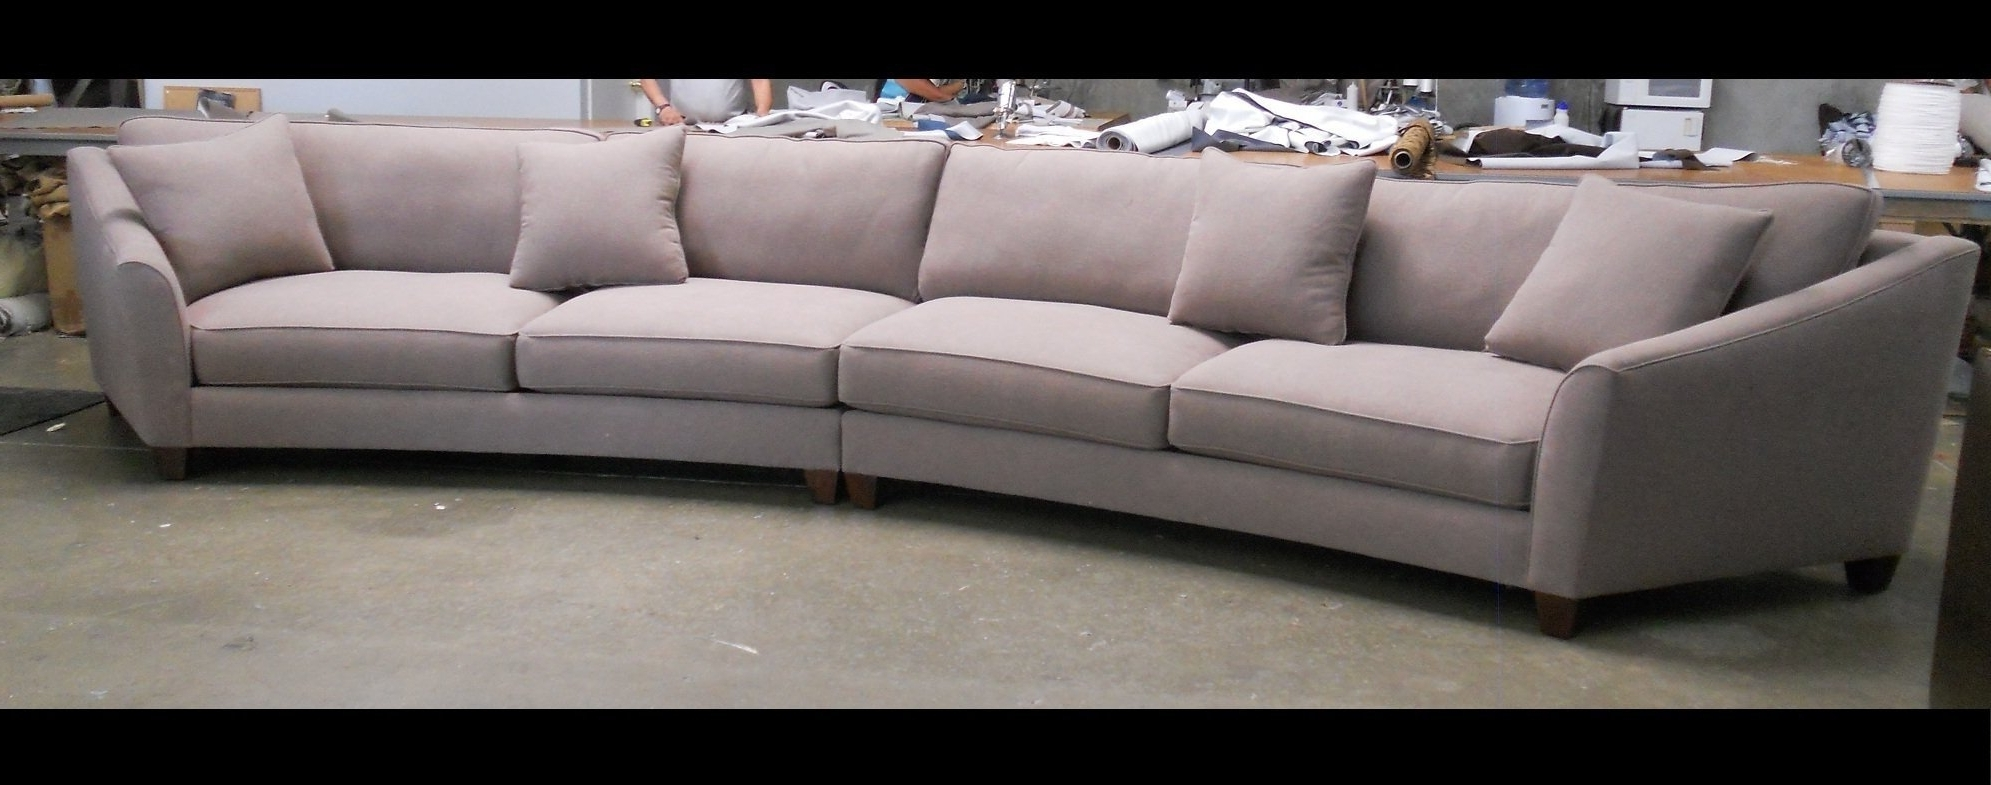 Round Sectional Sofas In Well Liked Inspirational Curved Sectional Sofa 14 With Additional Sofa Room (View 13 of 20)